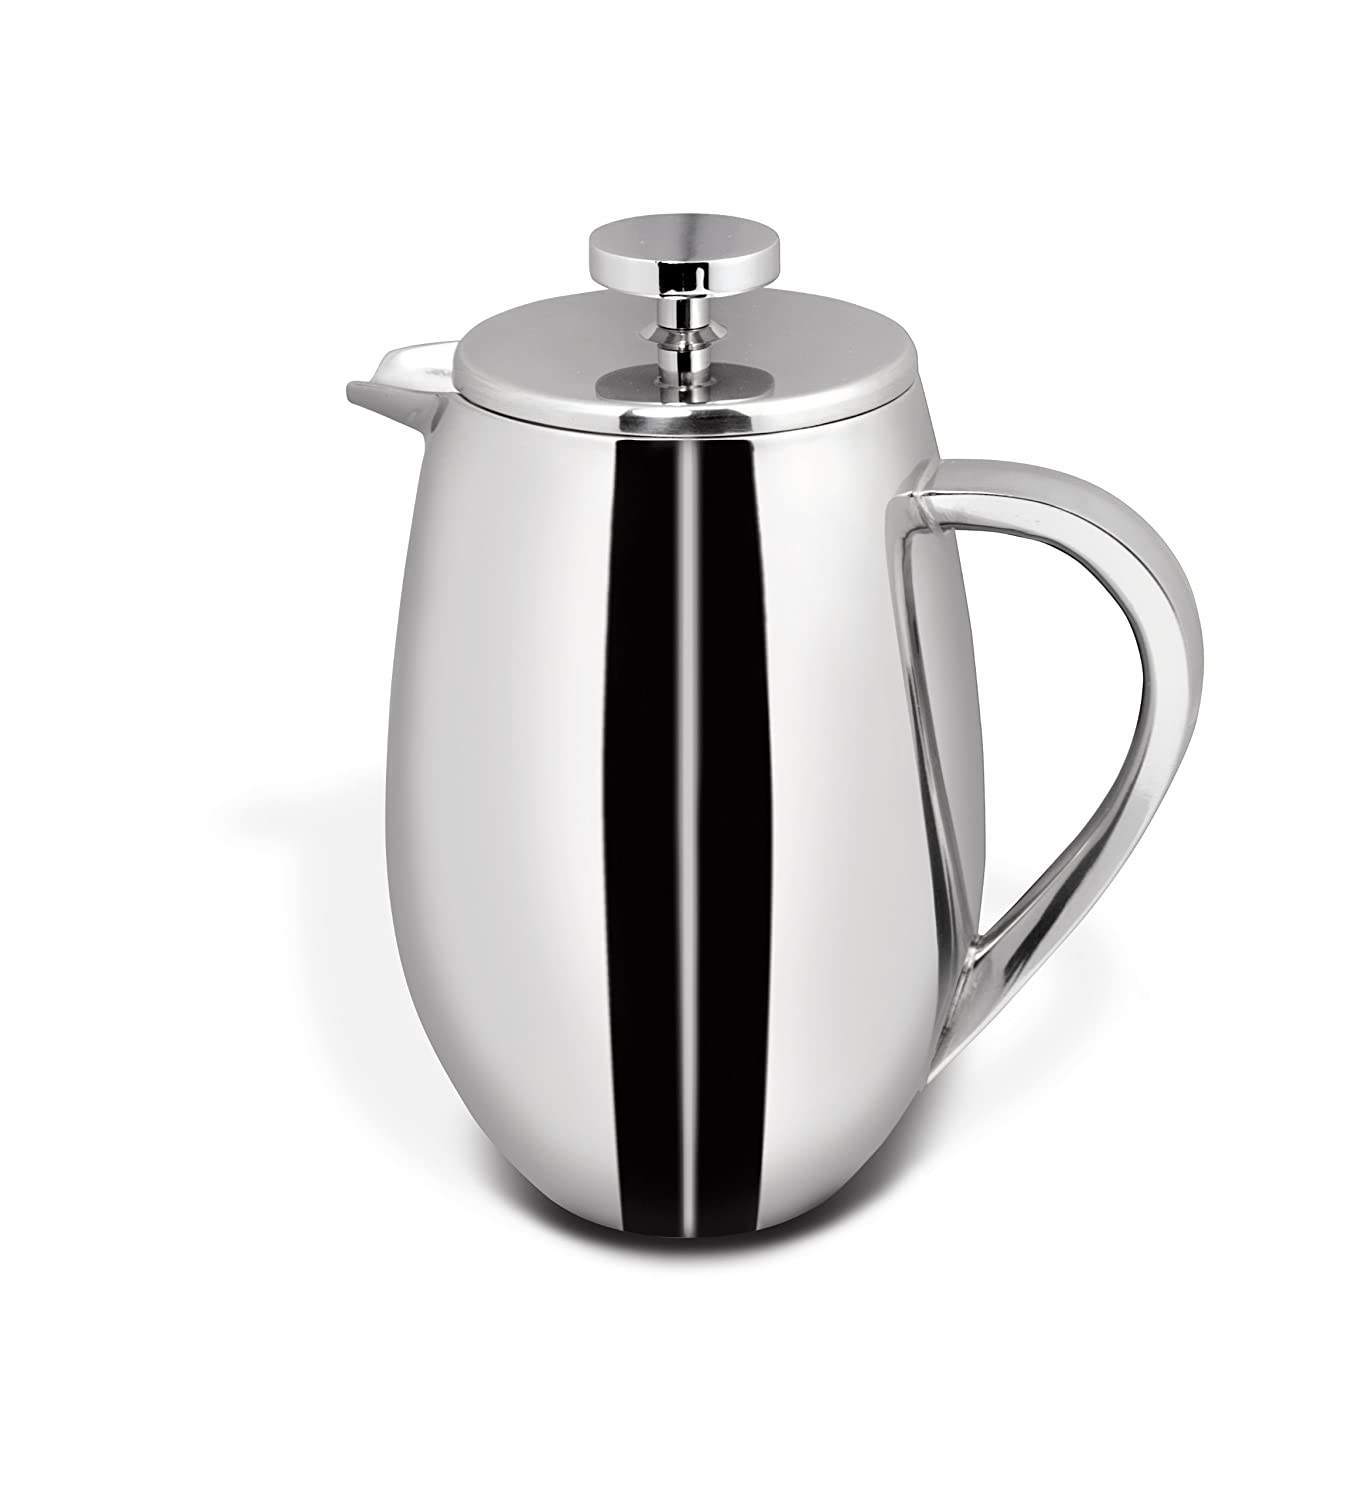 Bed bath beyond french press - Amazon Com Cuisinox Double Walled French Press 1 0 Litre Stainless Steel French Press Kitchen Dining